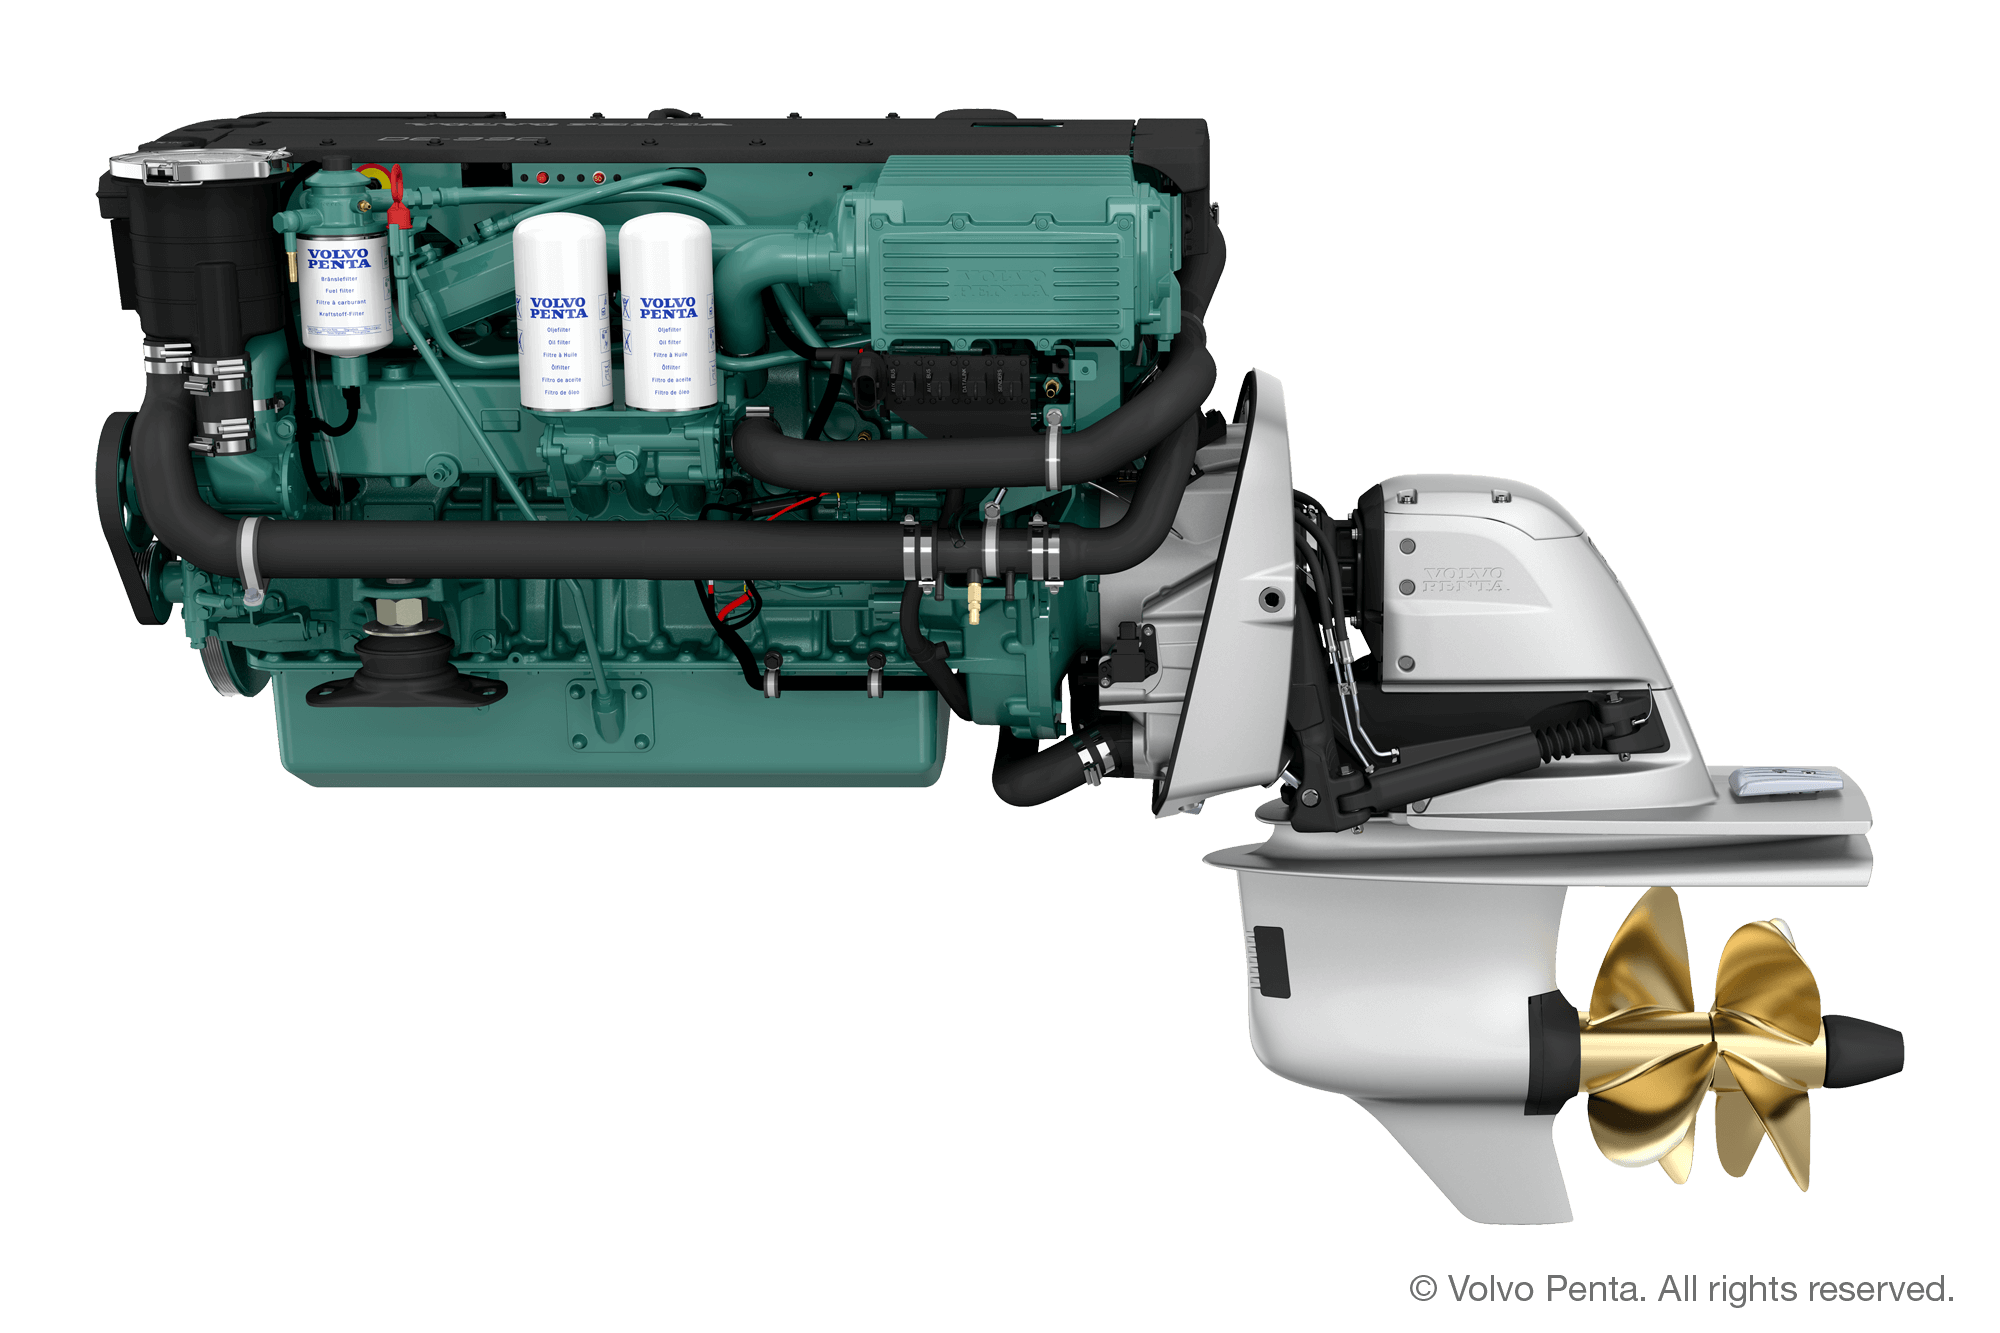 Volvo Penta D6-340 (340 hp), Duoprop stern drive (single engine) with propeller G2